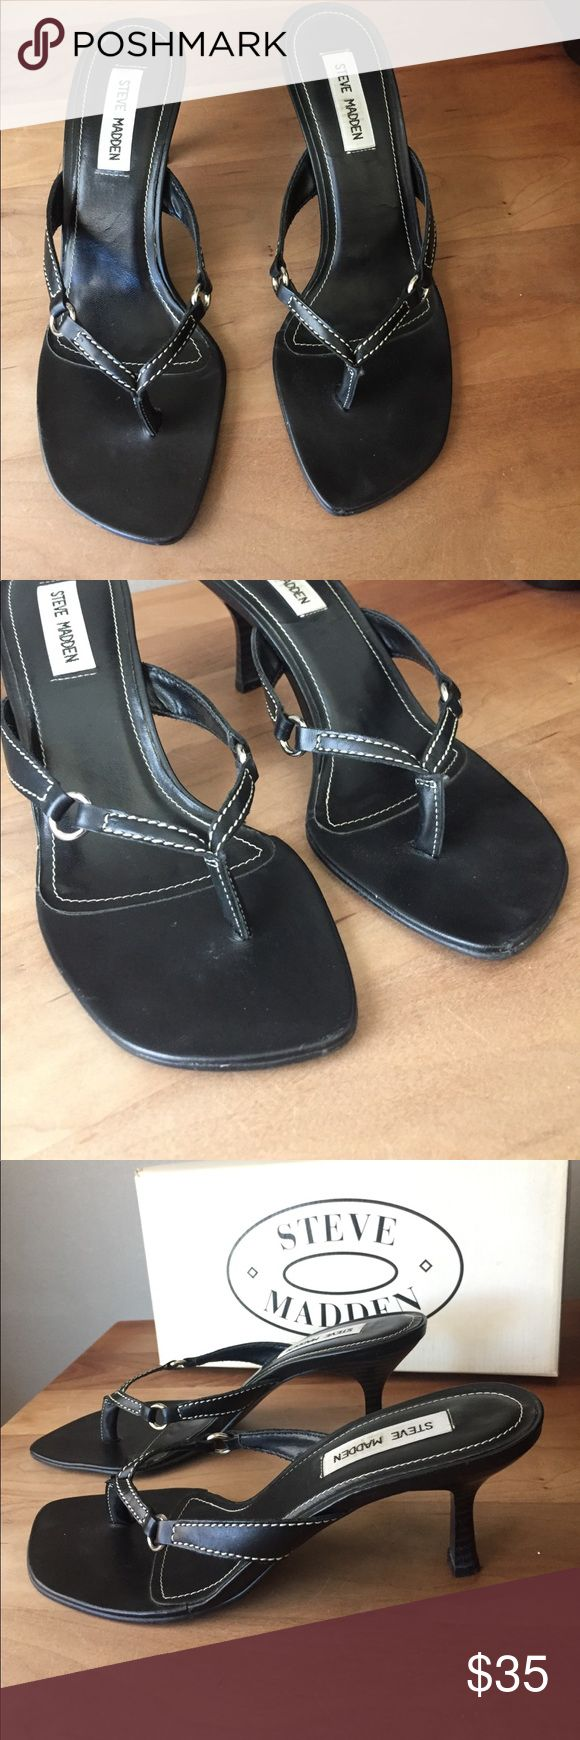 Black sandals ultima online - Black Leather Heeled Sandals White Piping Silver These Are An Excellent Pair Of Vintage